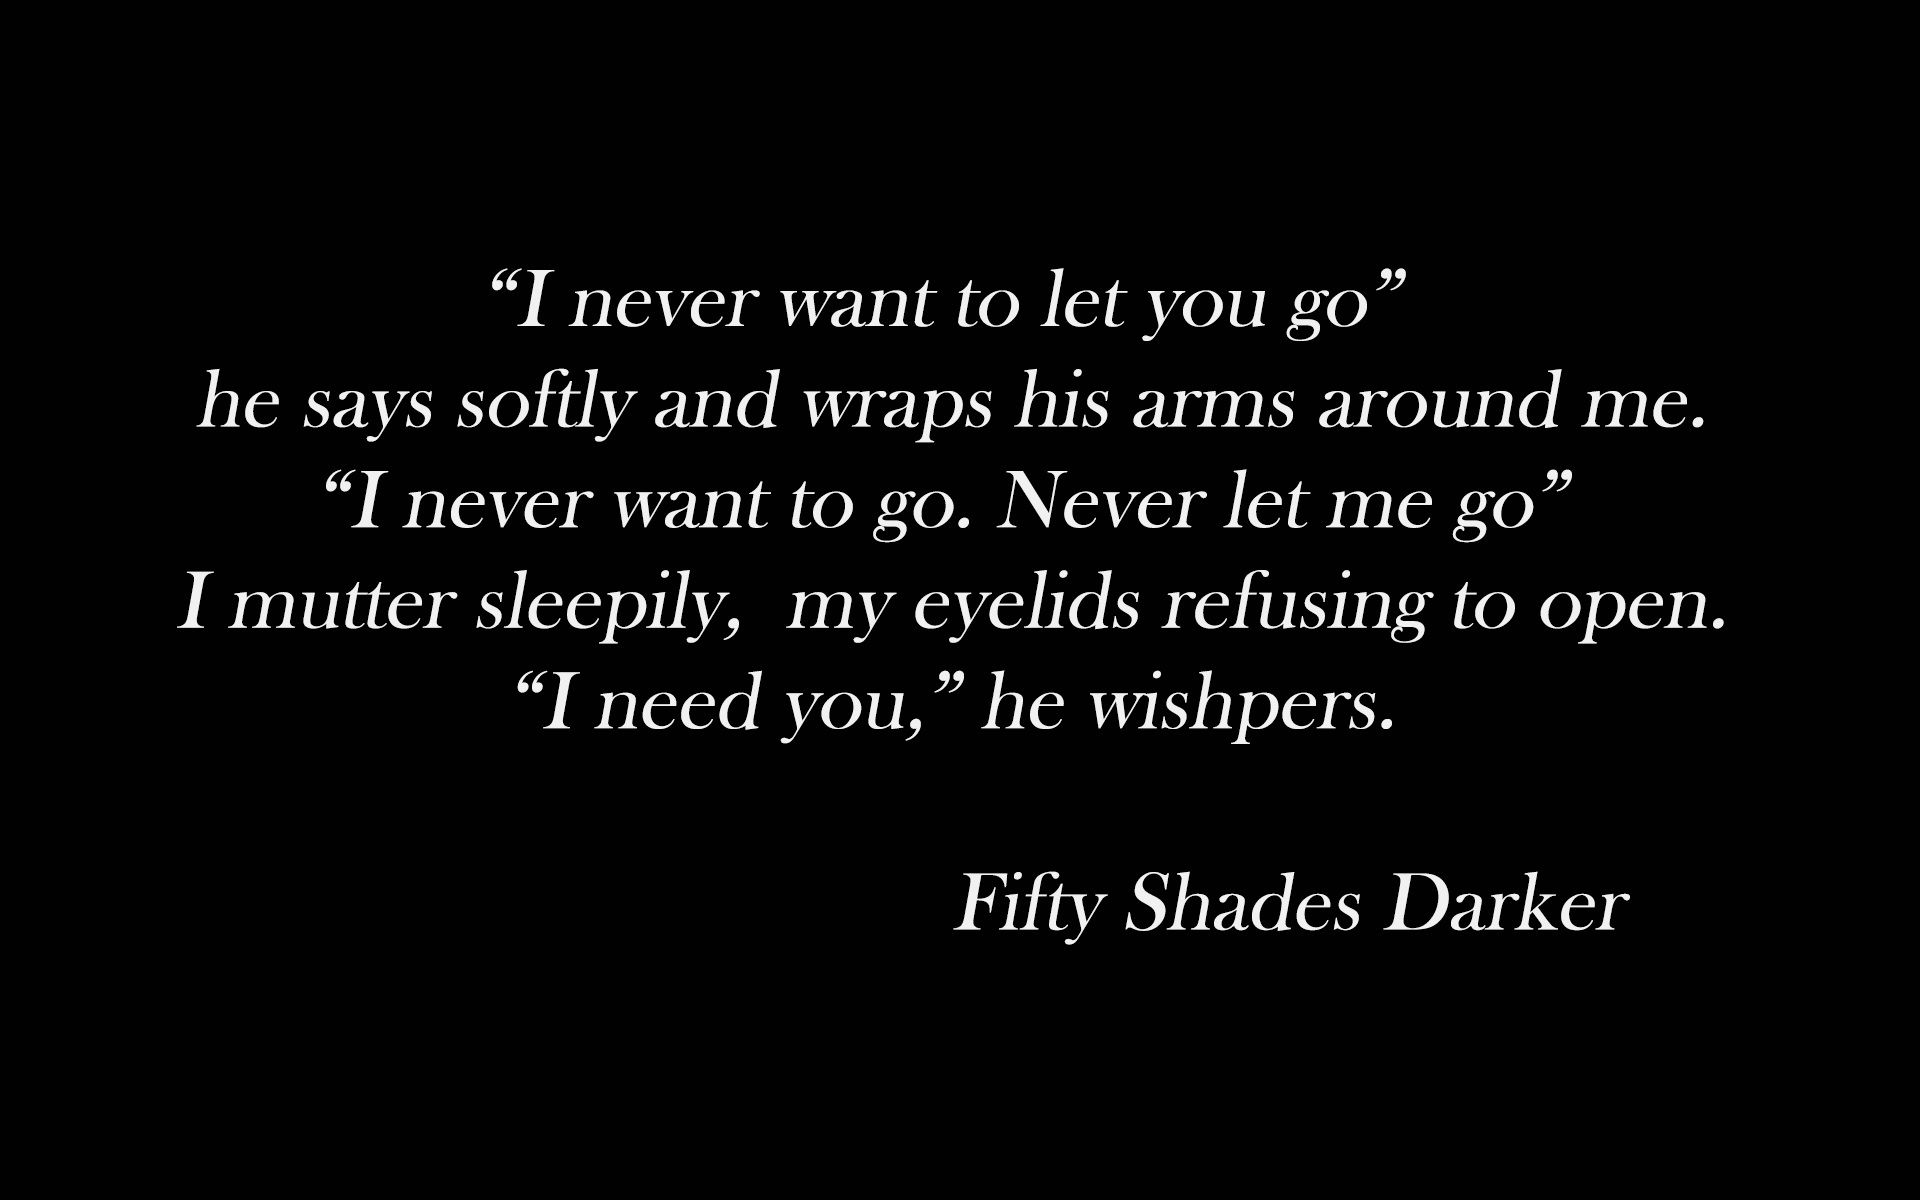 Quotes From 50 Shades Of Grey 50 Shades Of Grey Darker Quotes Picture